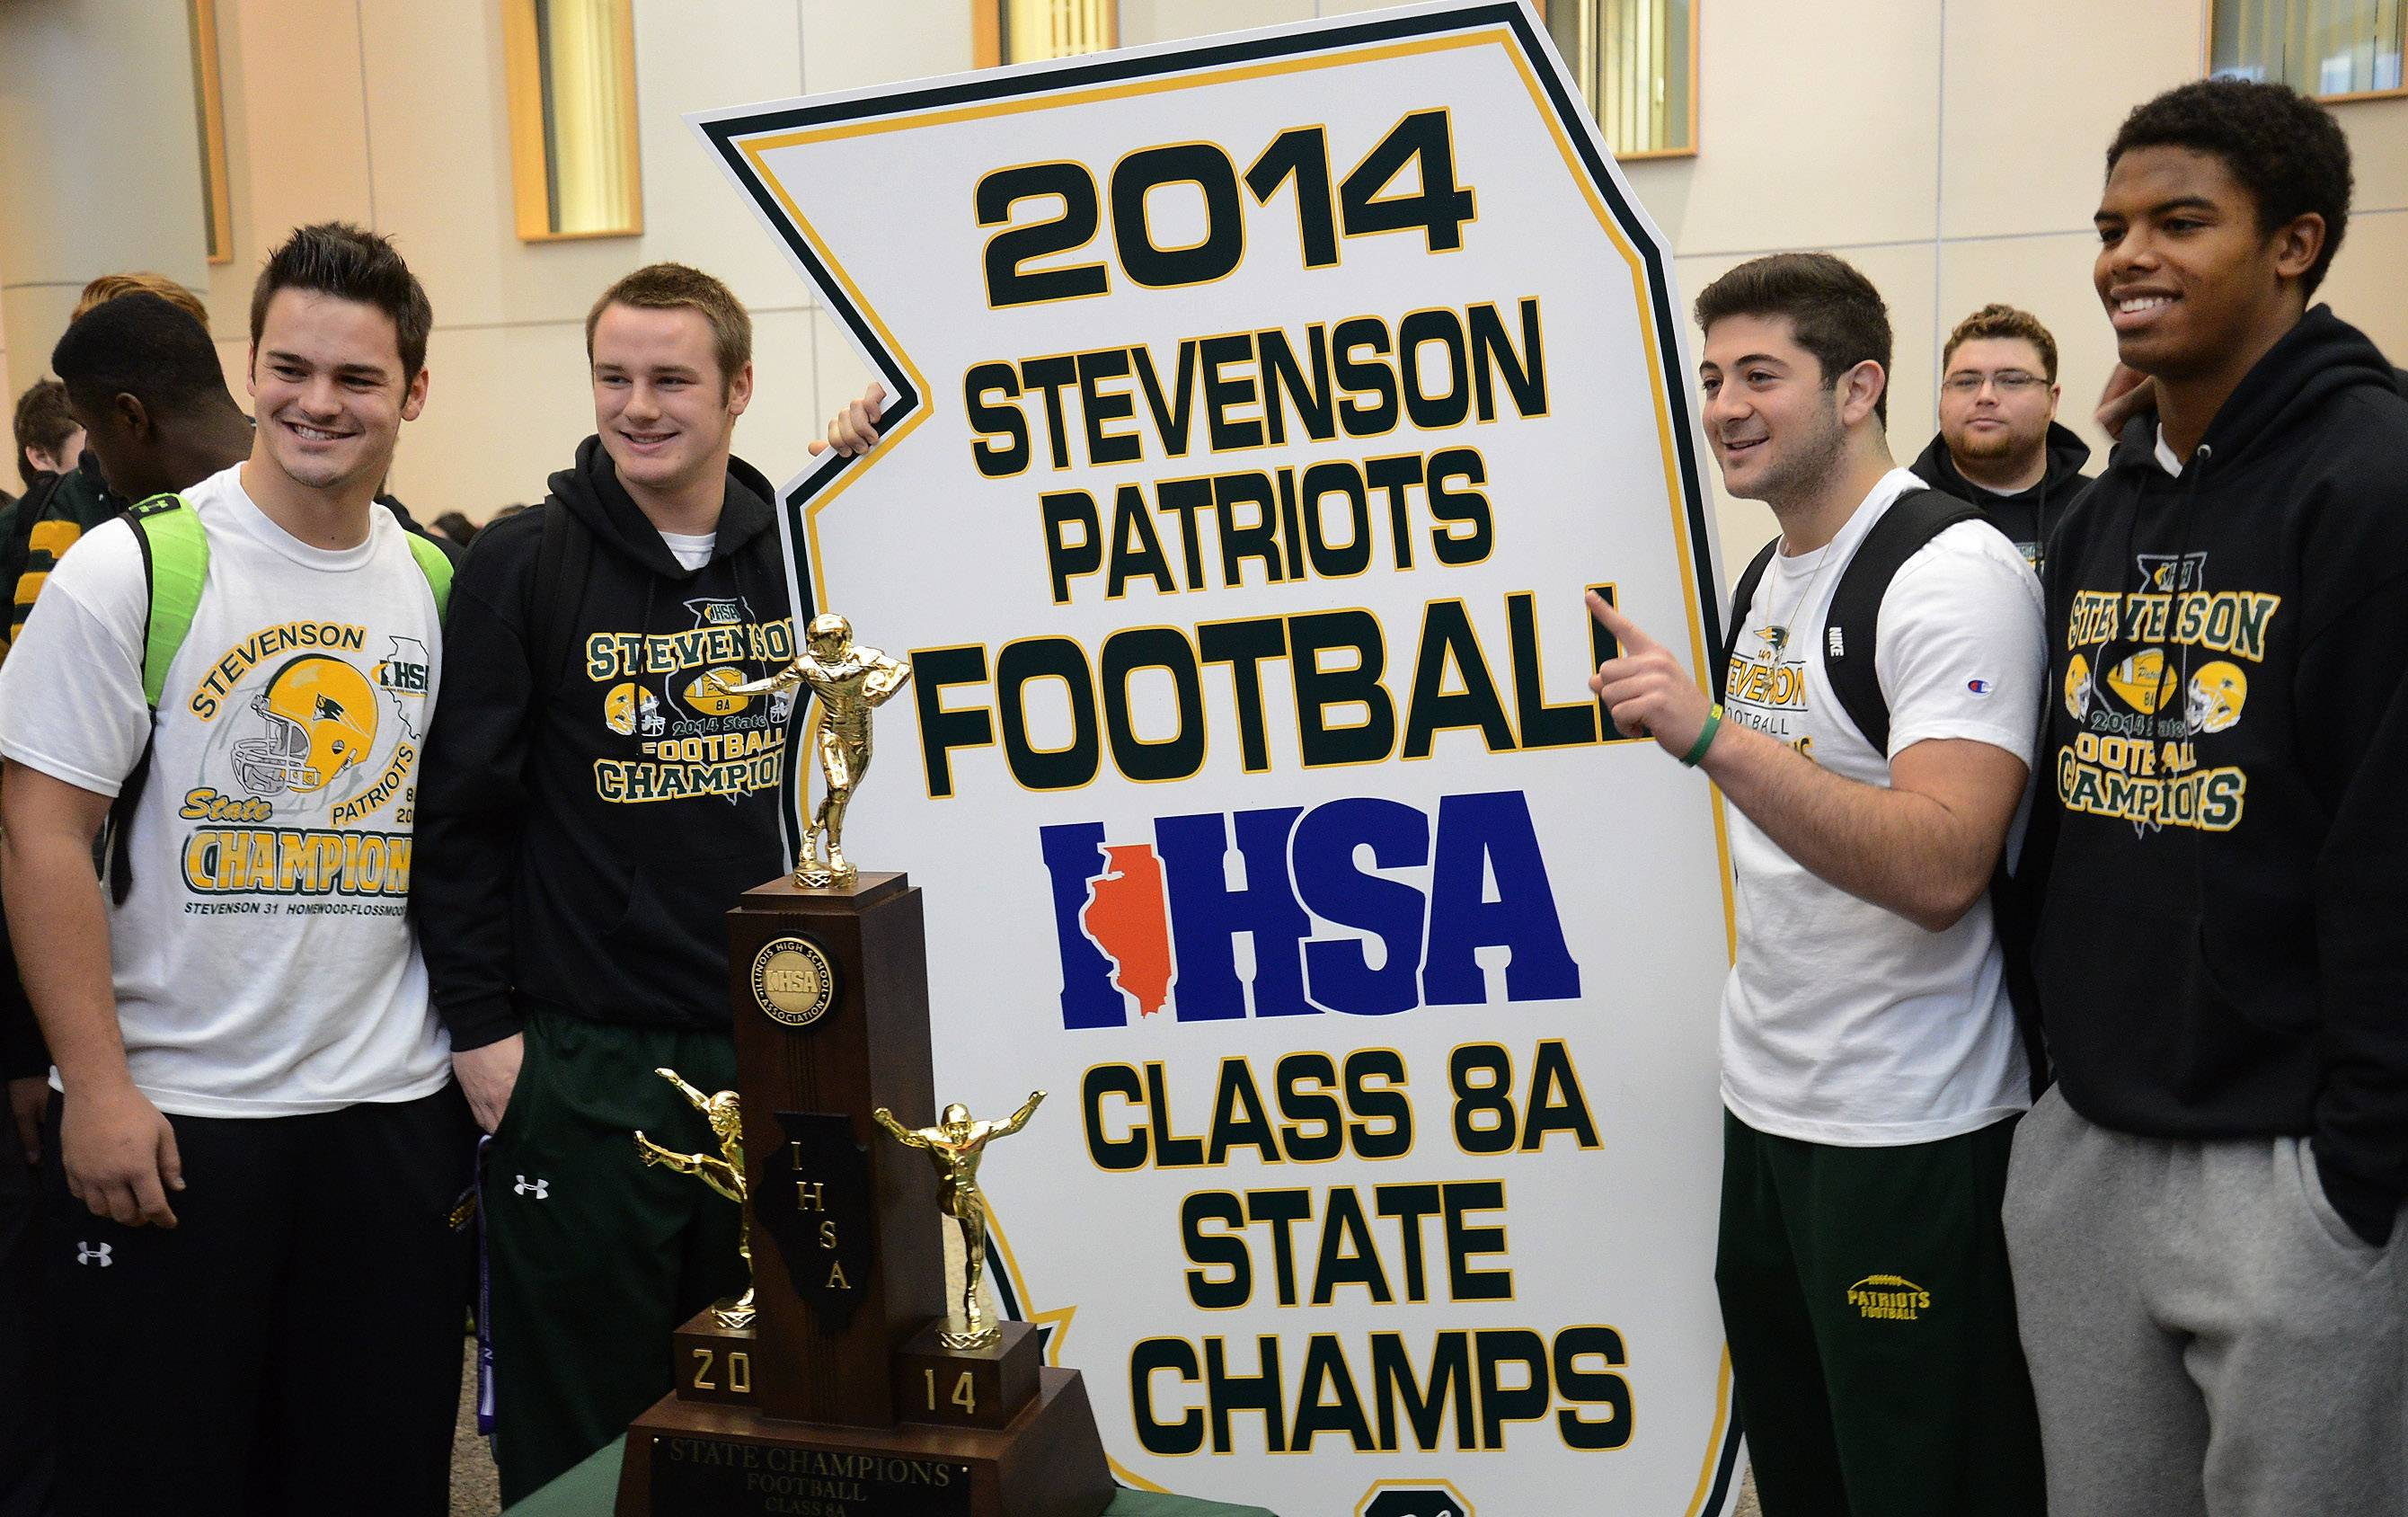 From left seniors, Jason Vravick, Willie Bourbon, Jack Joseph and Cameron Green pose with trophy and state plaque as Stevenson High School celebrates winning the state Class 8A football championship.